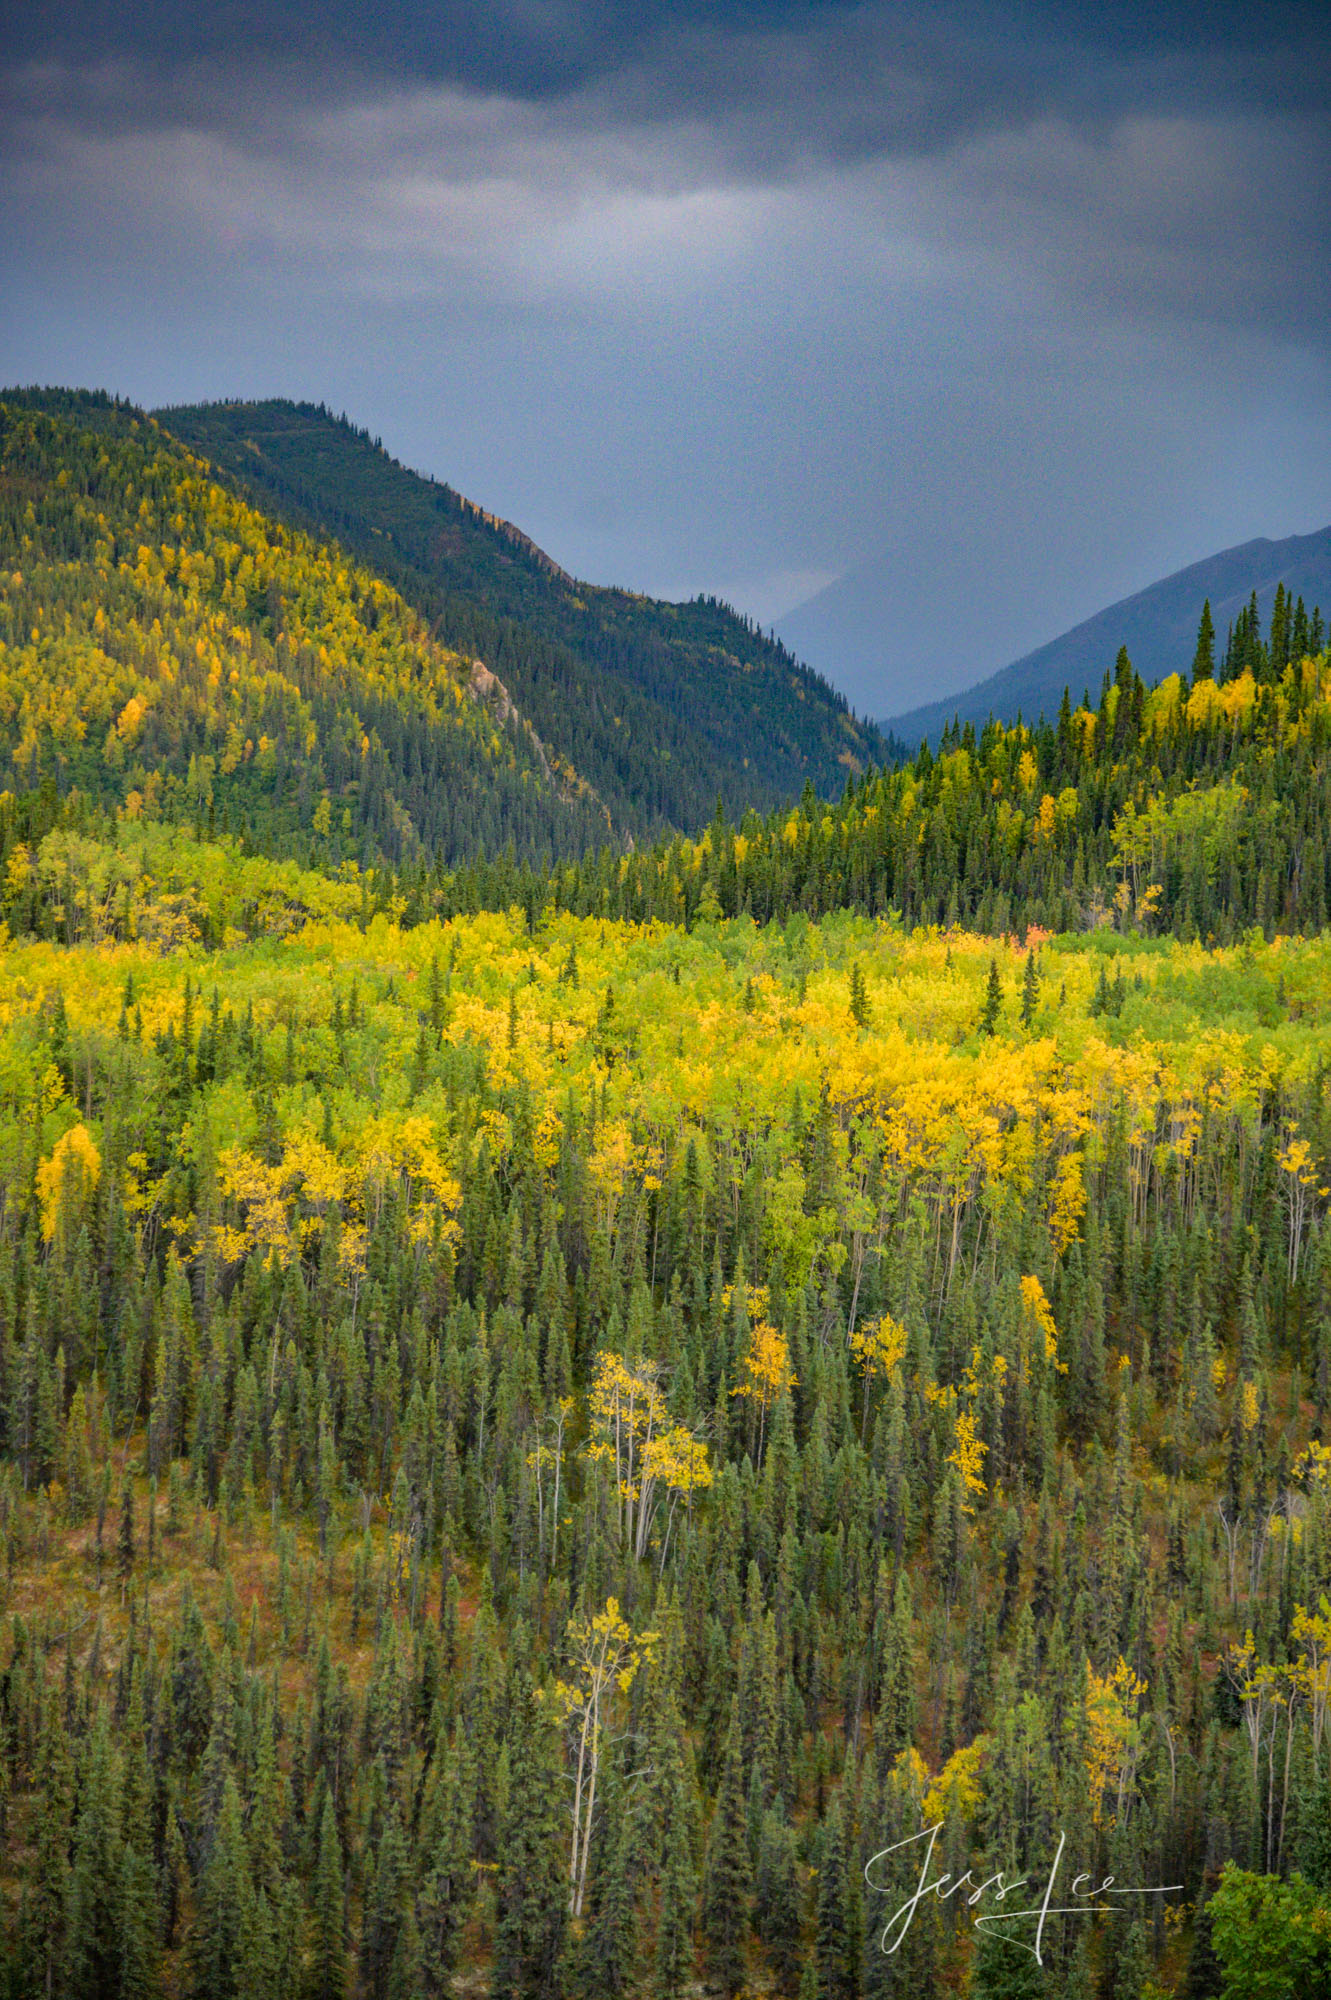 These Moose fine art landscape photographs are offered as high quality prints for sale as created by Jess Lee. My prints are...